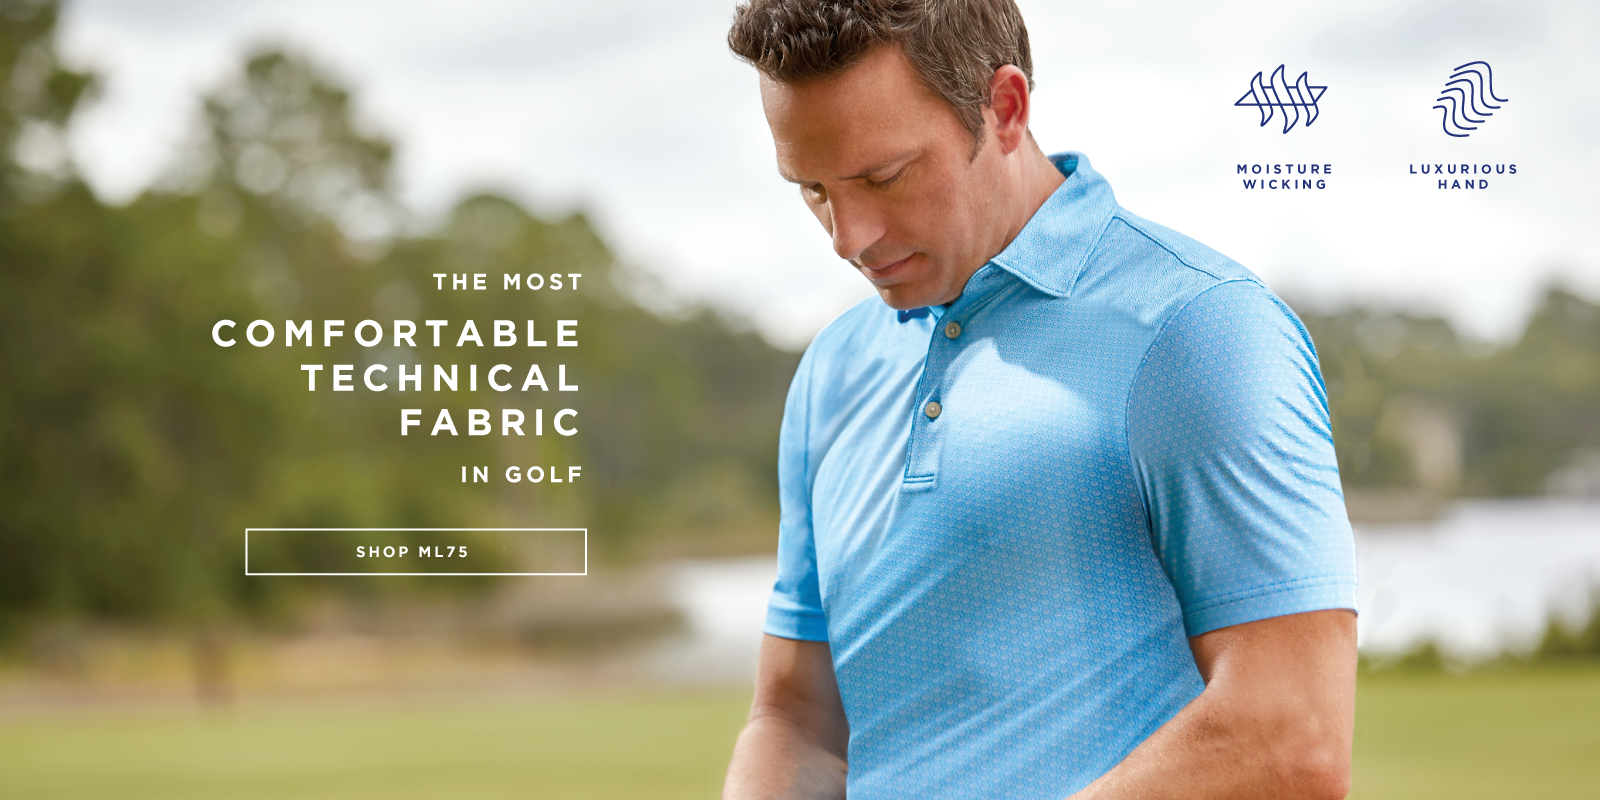 The Most Comfortable Technical Fabric In Golf Shop ML75 Moisture Wicking Luxurious Hand